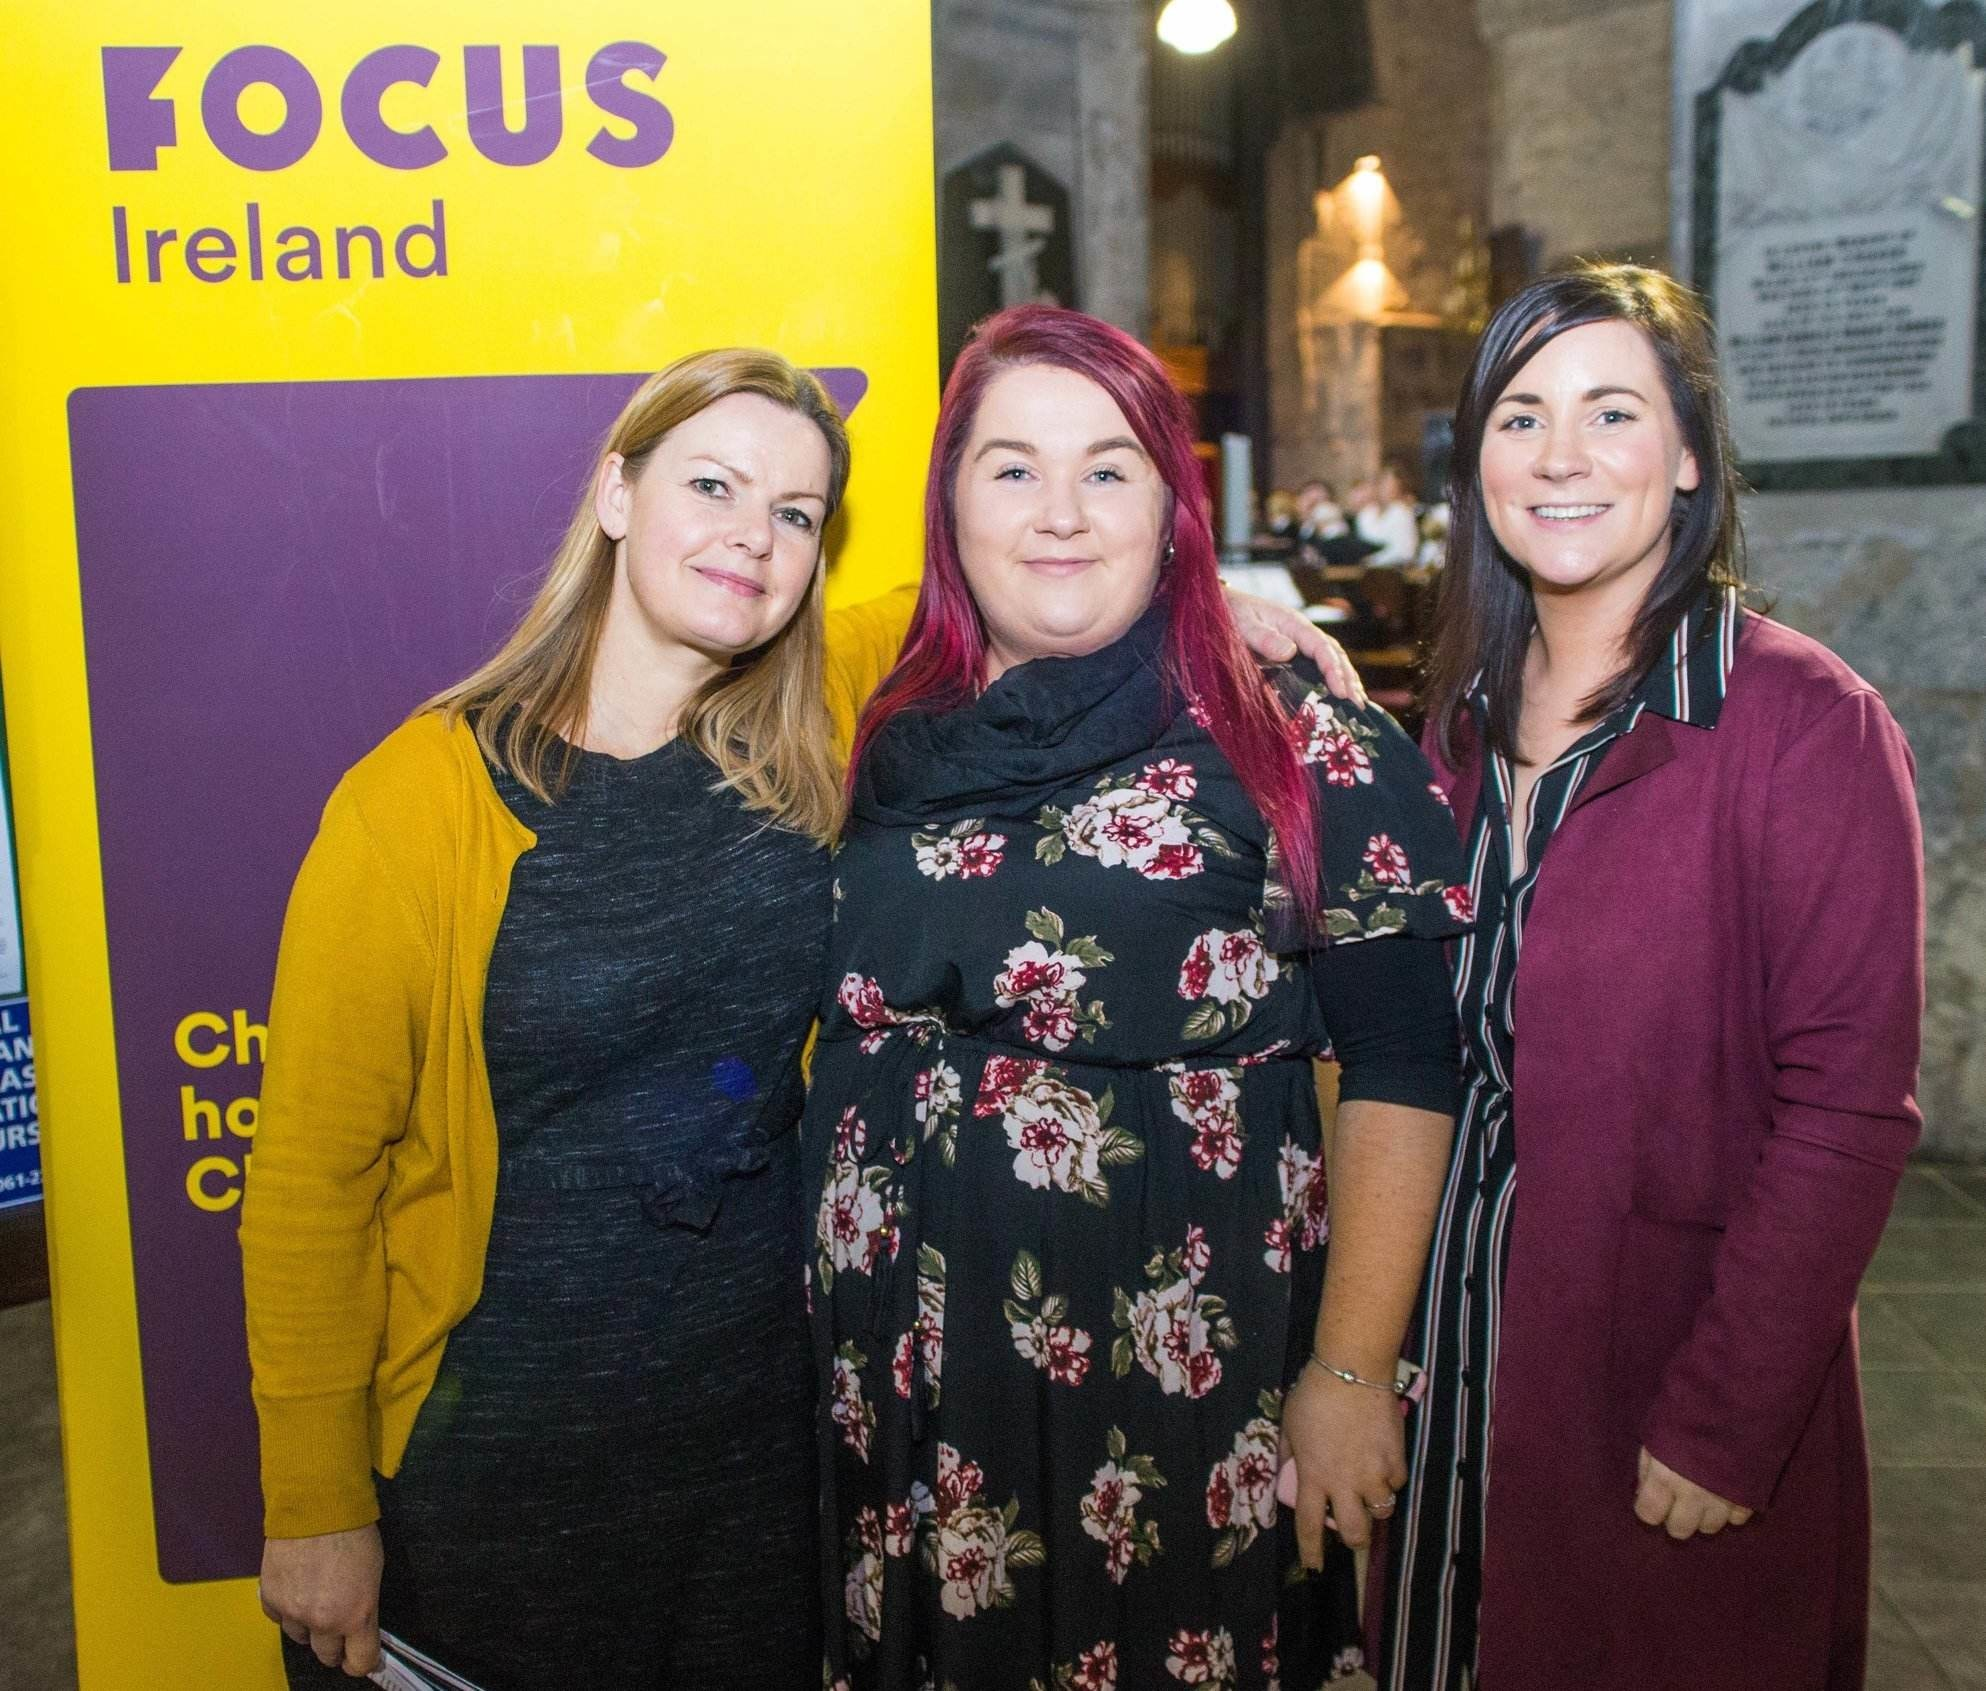 Focus Ireland Thanksgiving